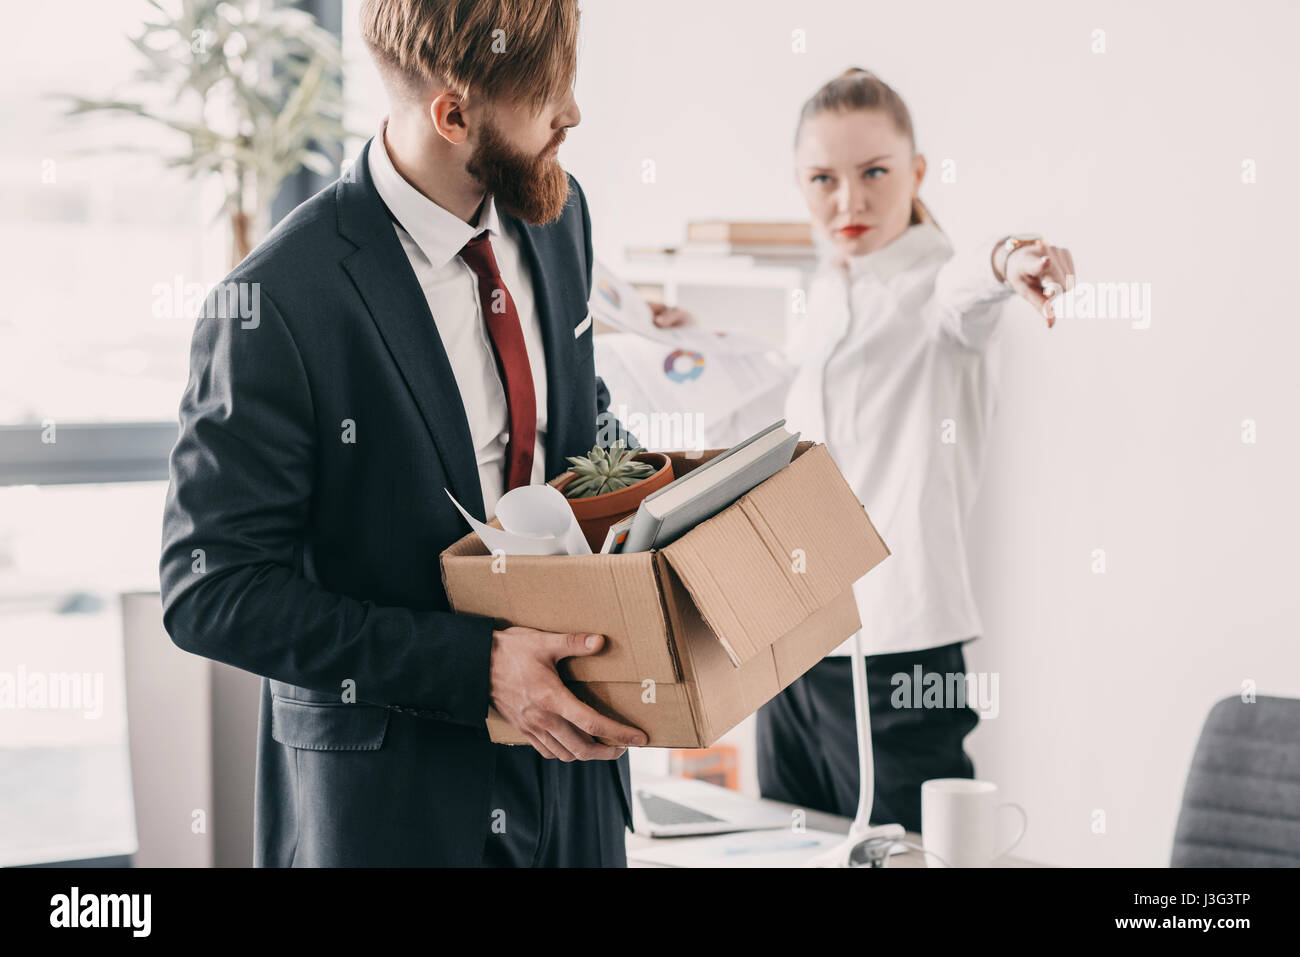 Young upset fired businessman with cardboard box and boss in office - Stock Image